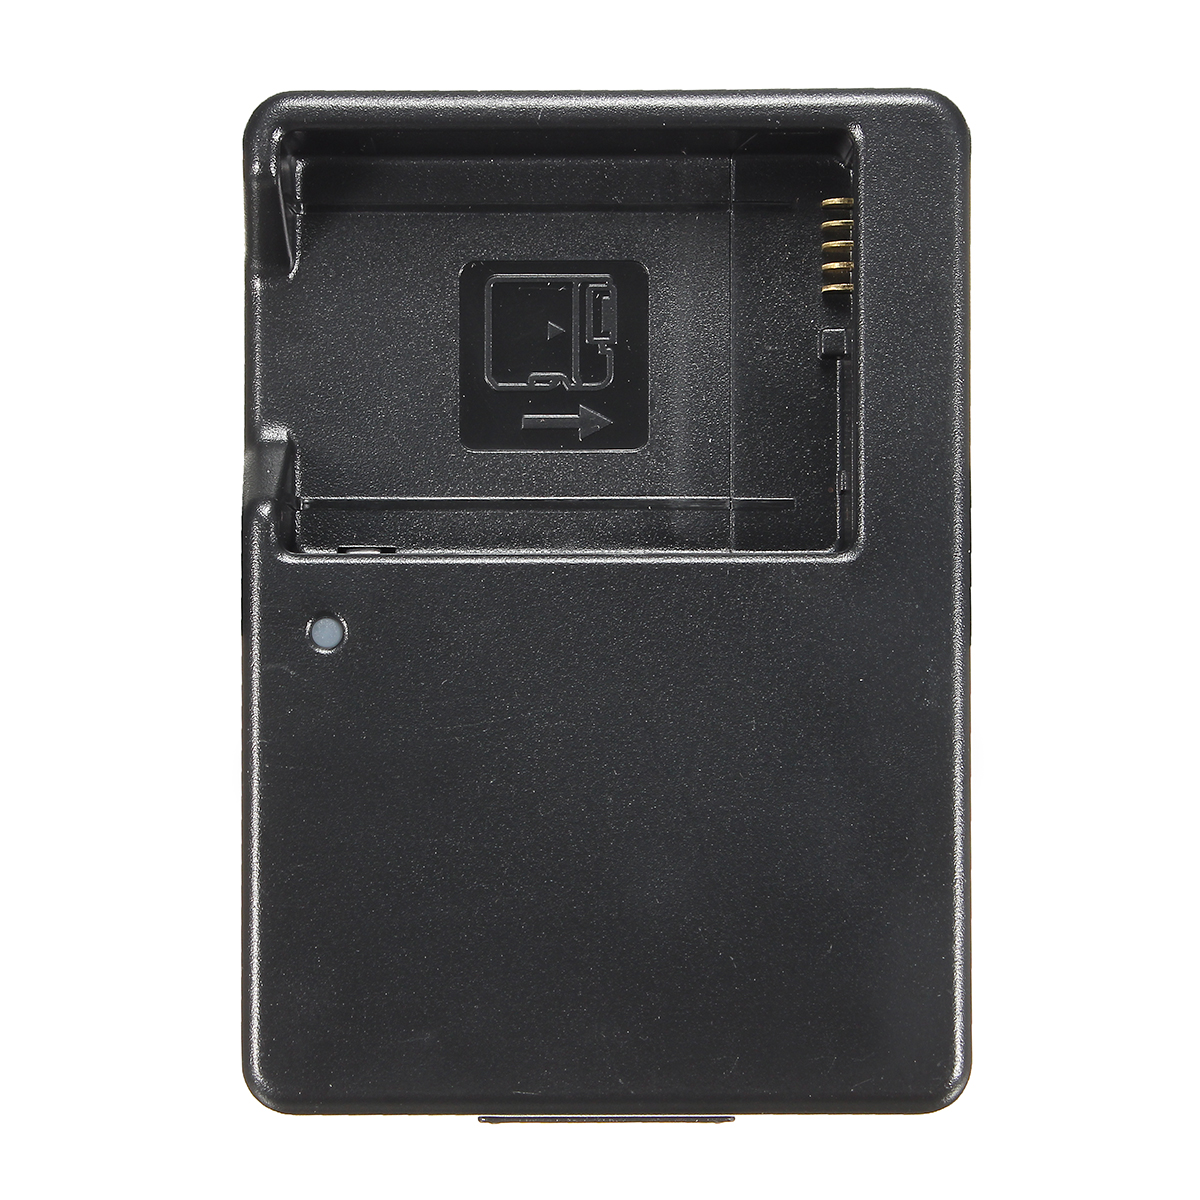 Camera Battery Charger For Nikon En El14 El14a D5200 D5300